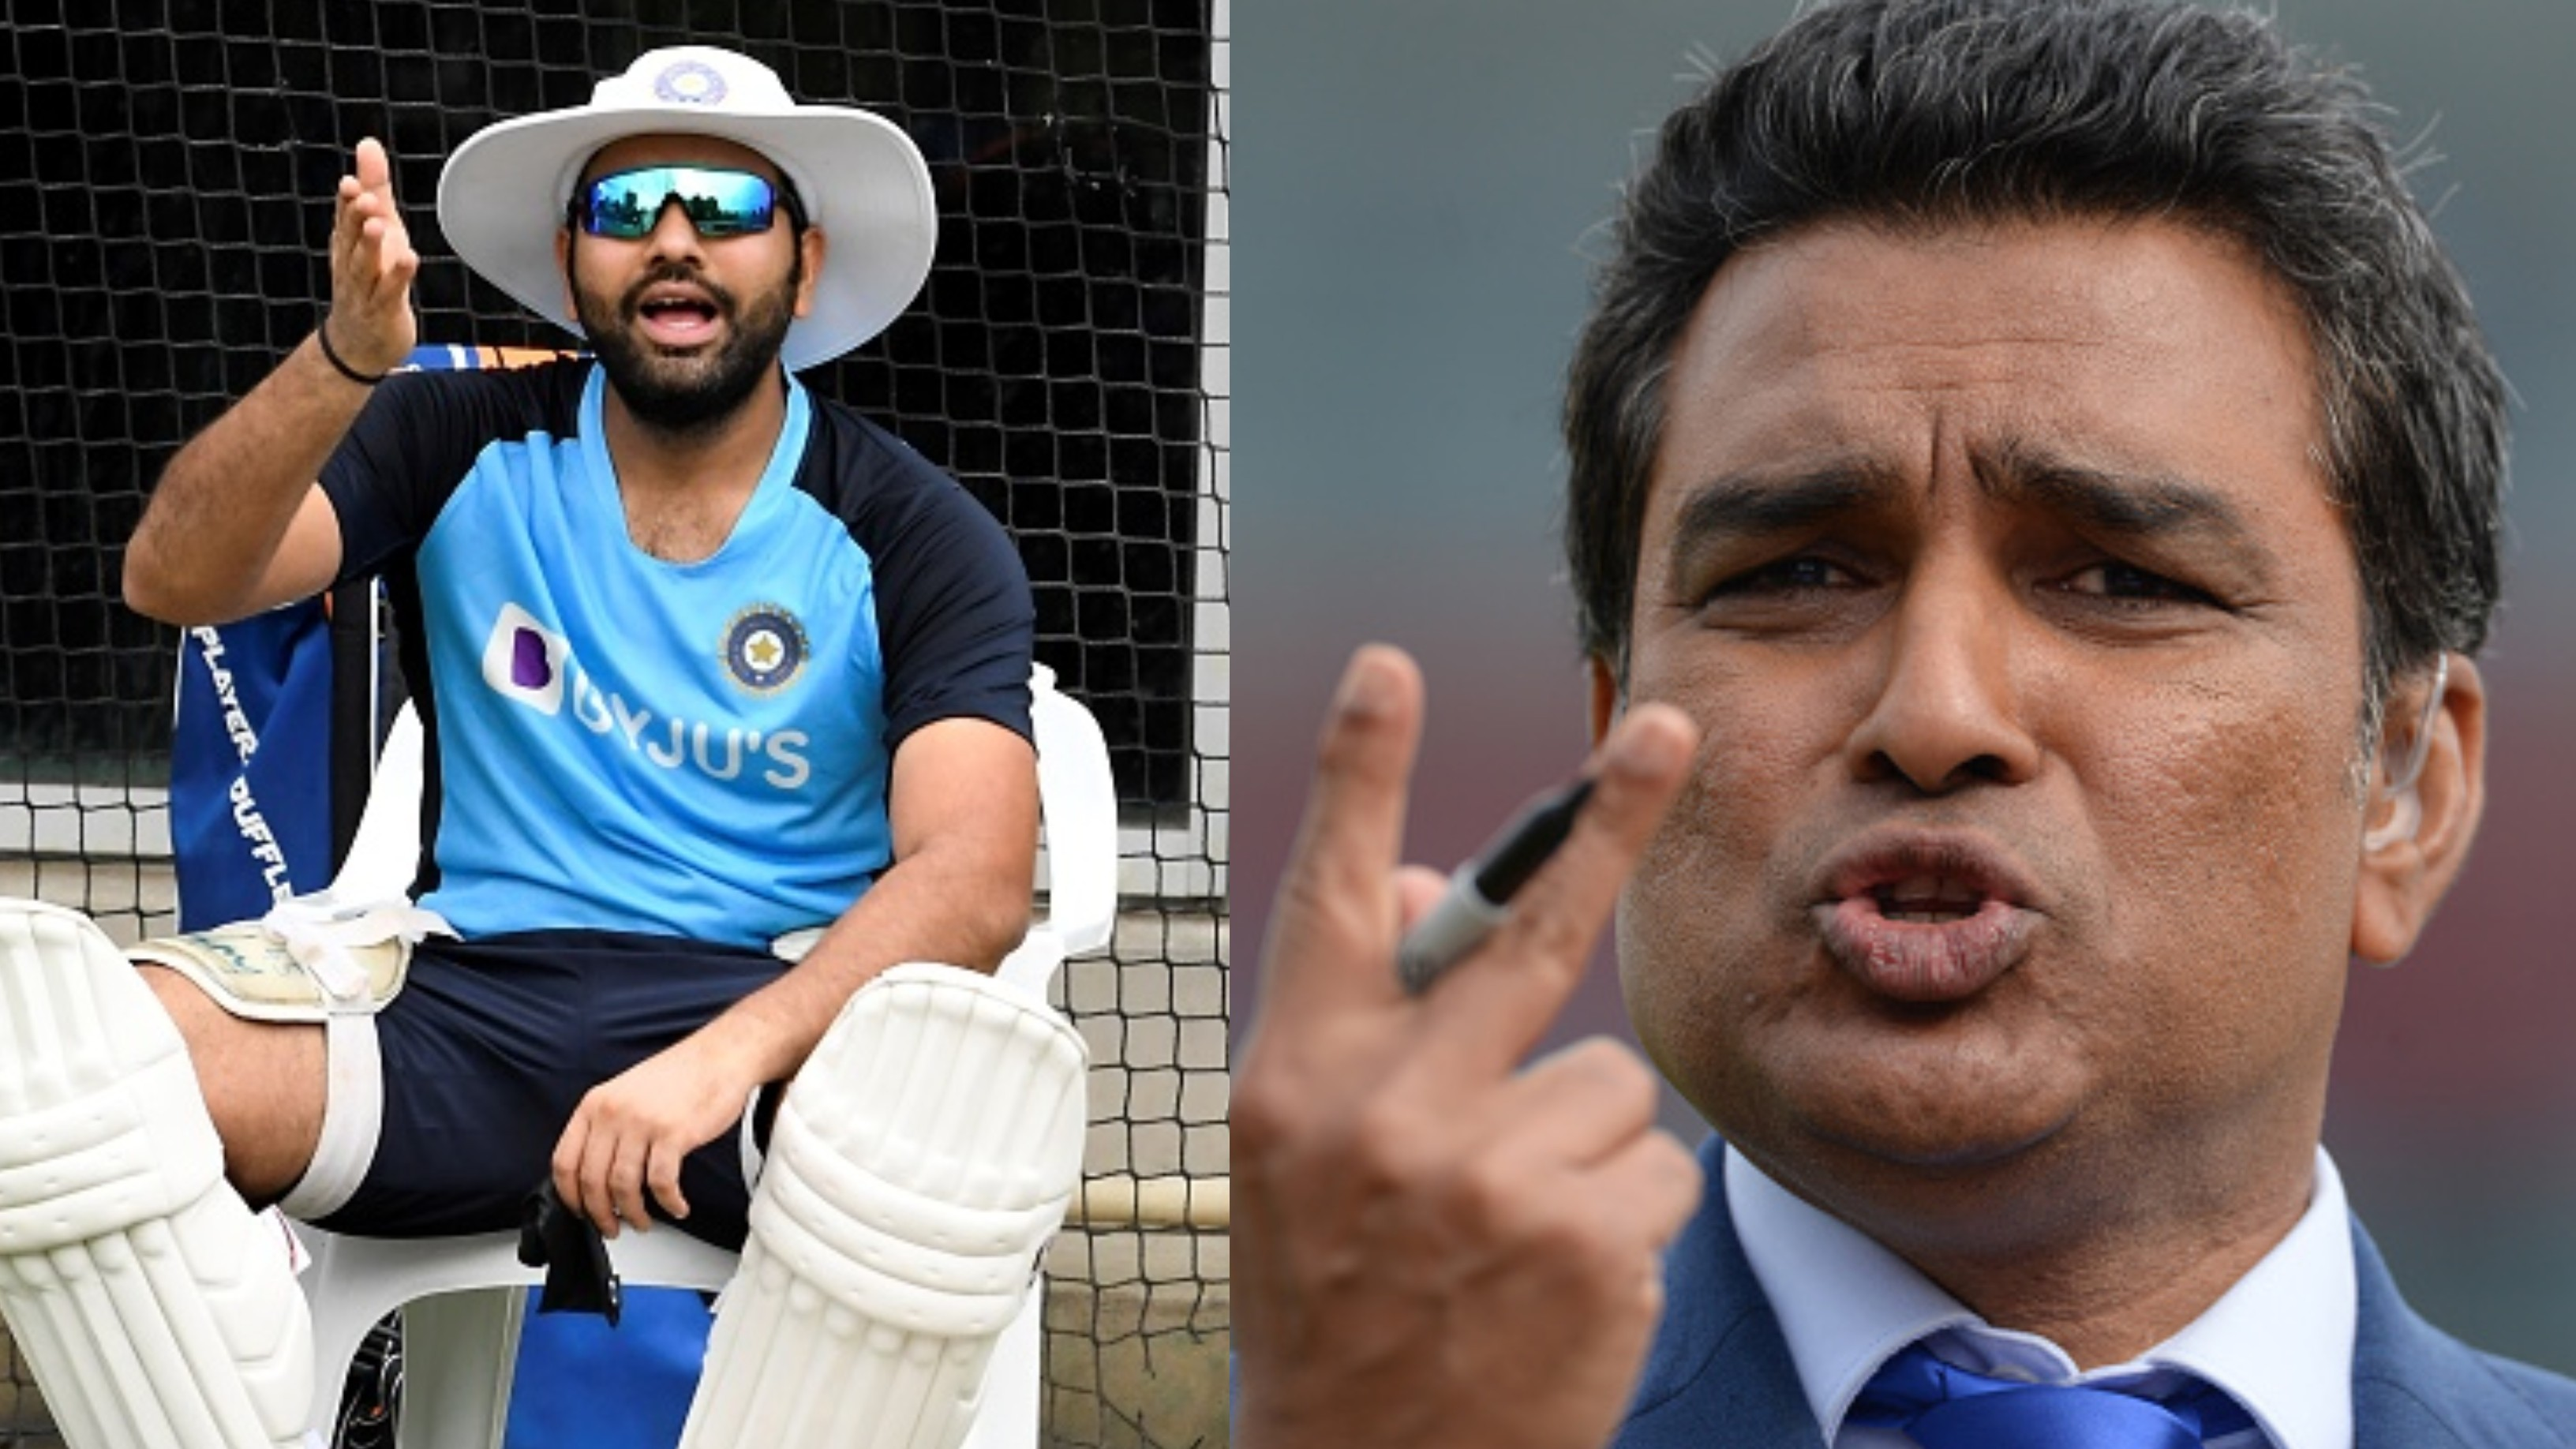 AUS v IND 2020-21: Sanjay Manjrekar slams Indian cricketers for bio-bubble breach